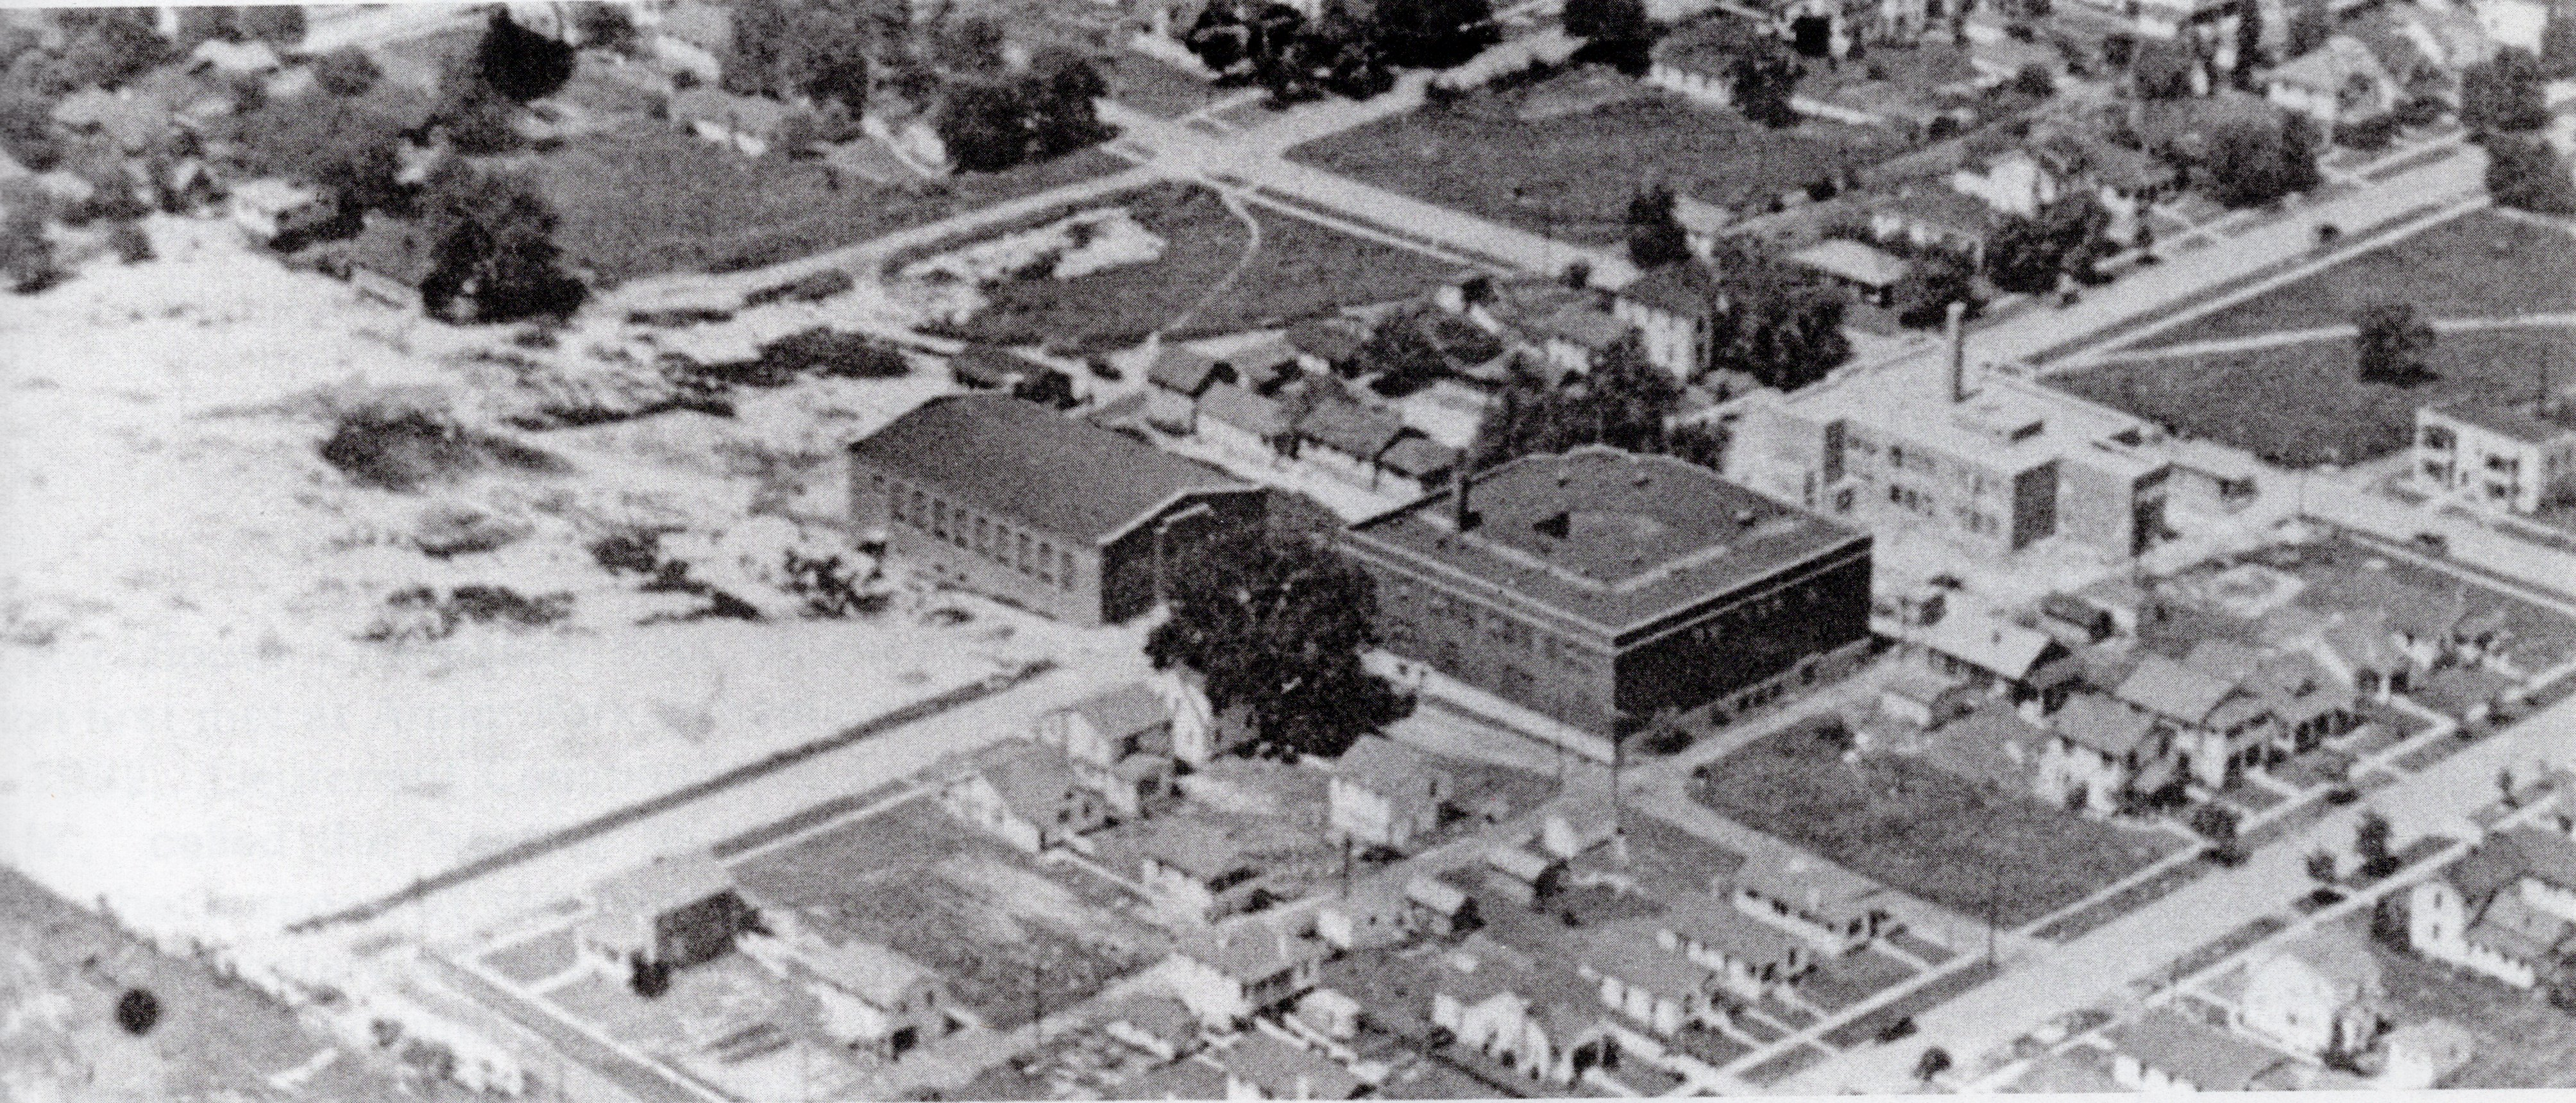 An aerial view of Oakes Field under construction (far left) circa 1941. Note that the Oakes Gymnasium has already been completed (center).